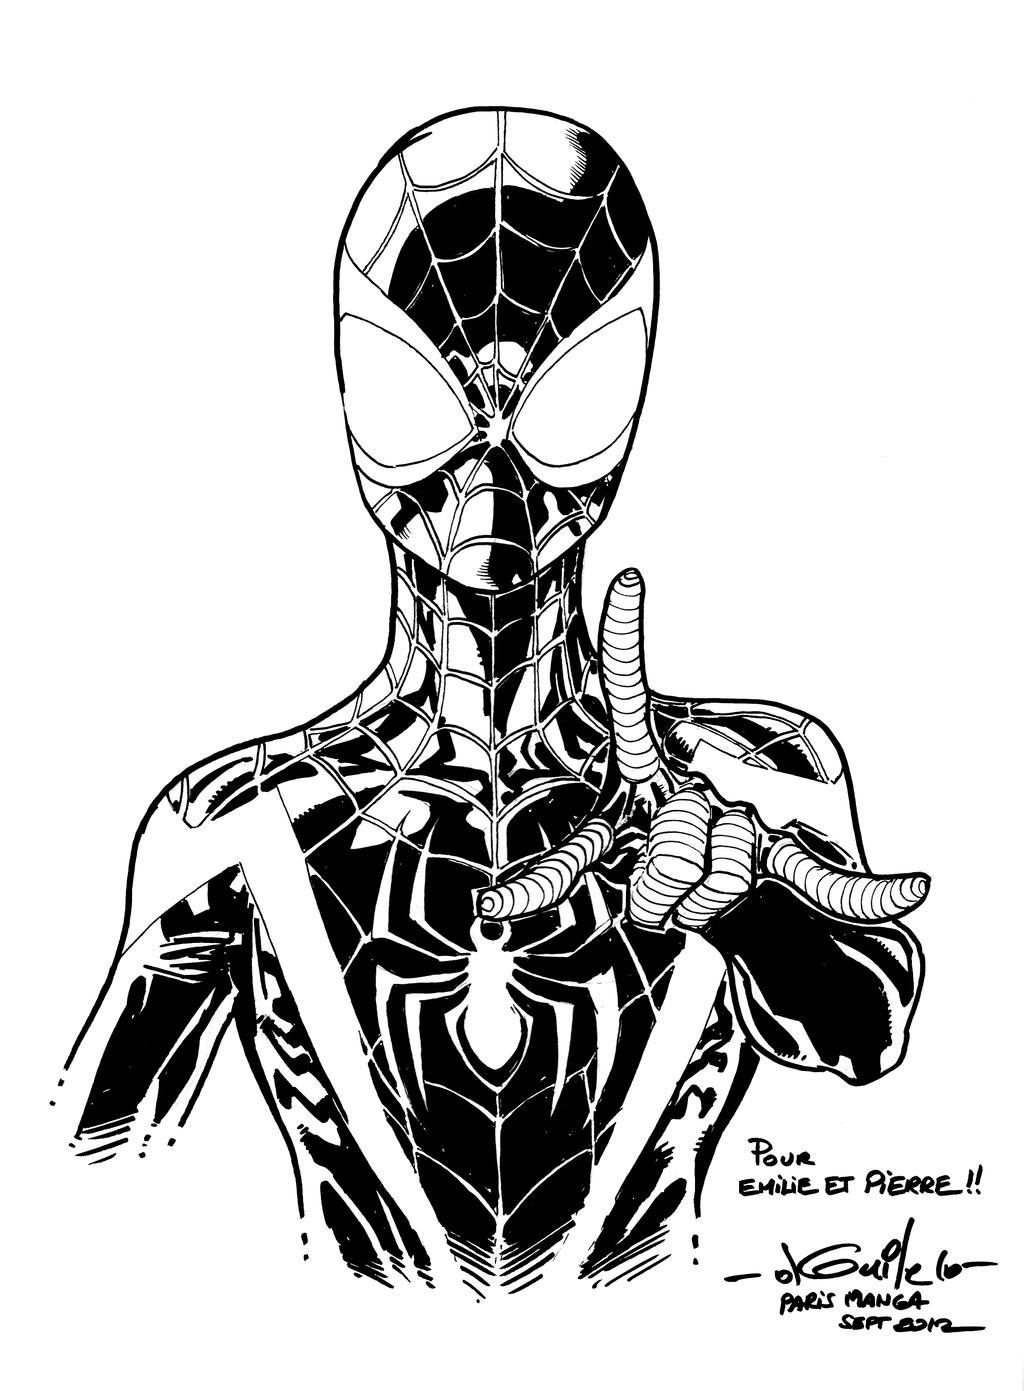 How To Draw Ultimate Spider Man Ultimate spider-man bustHow To Draw Ultimate Spider Man